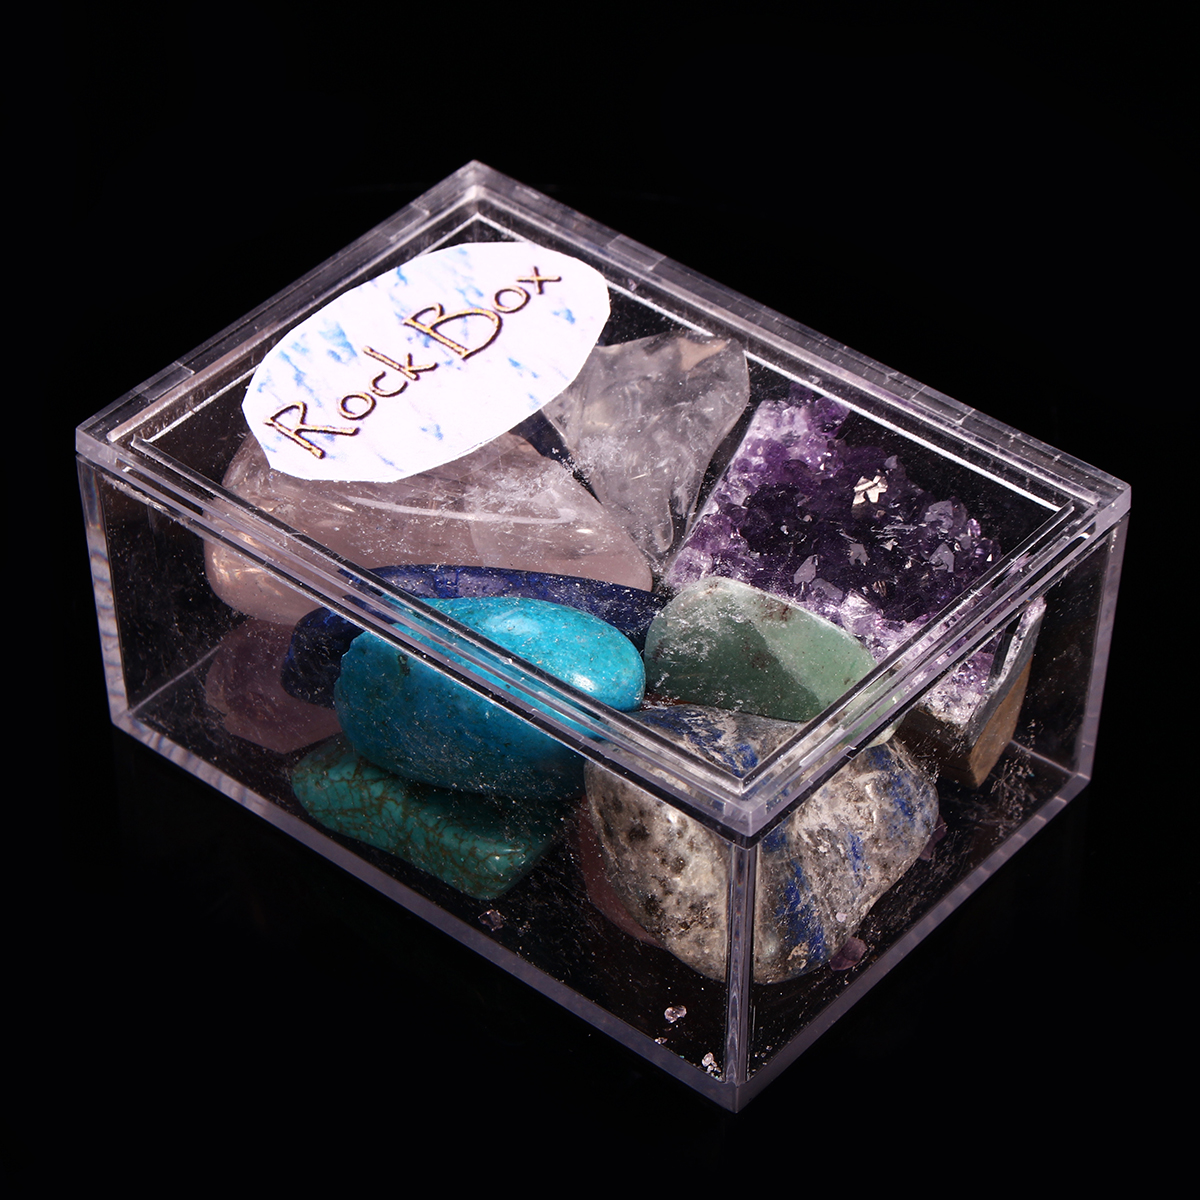 Natural Stone Collection Box Mix Gems Crystals Mineral Specimens Rock Decoration